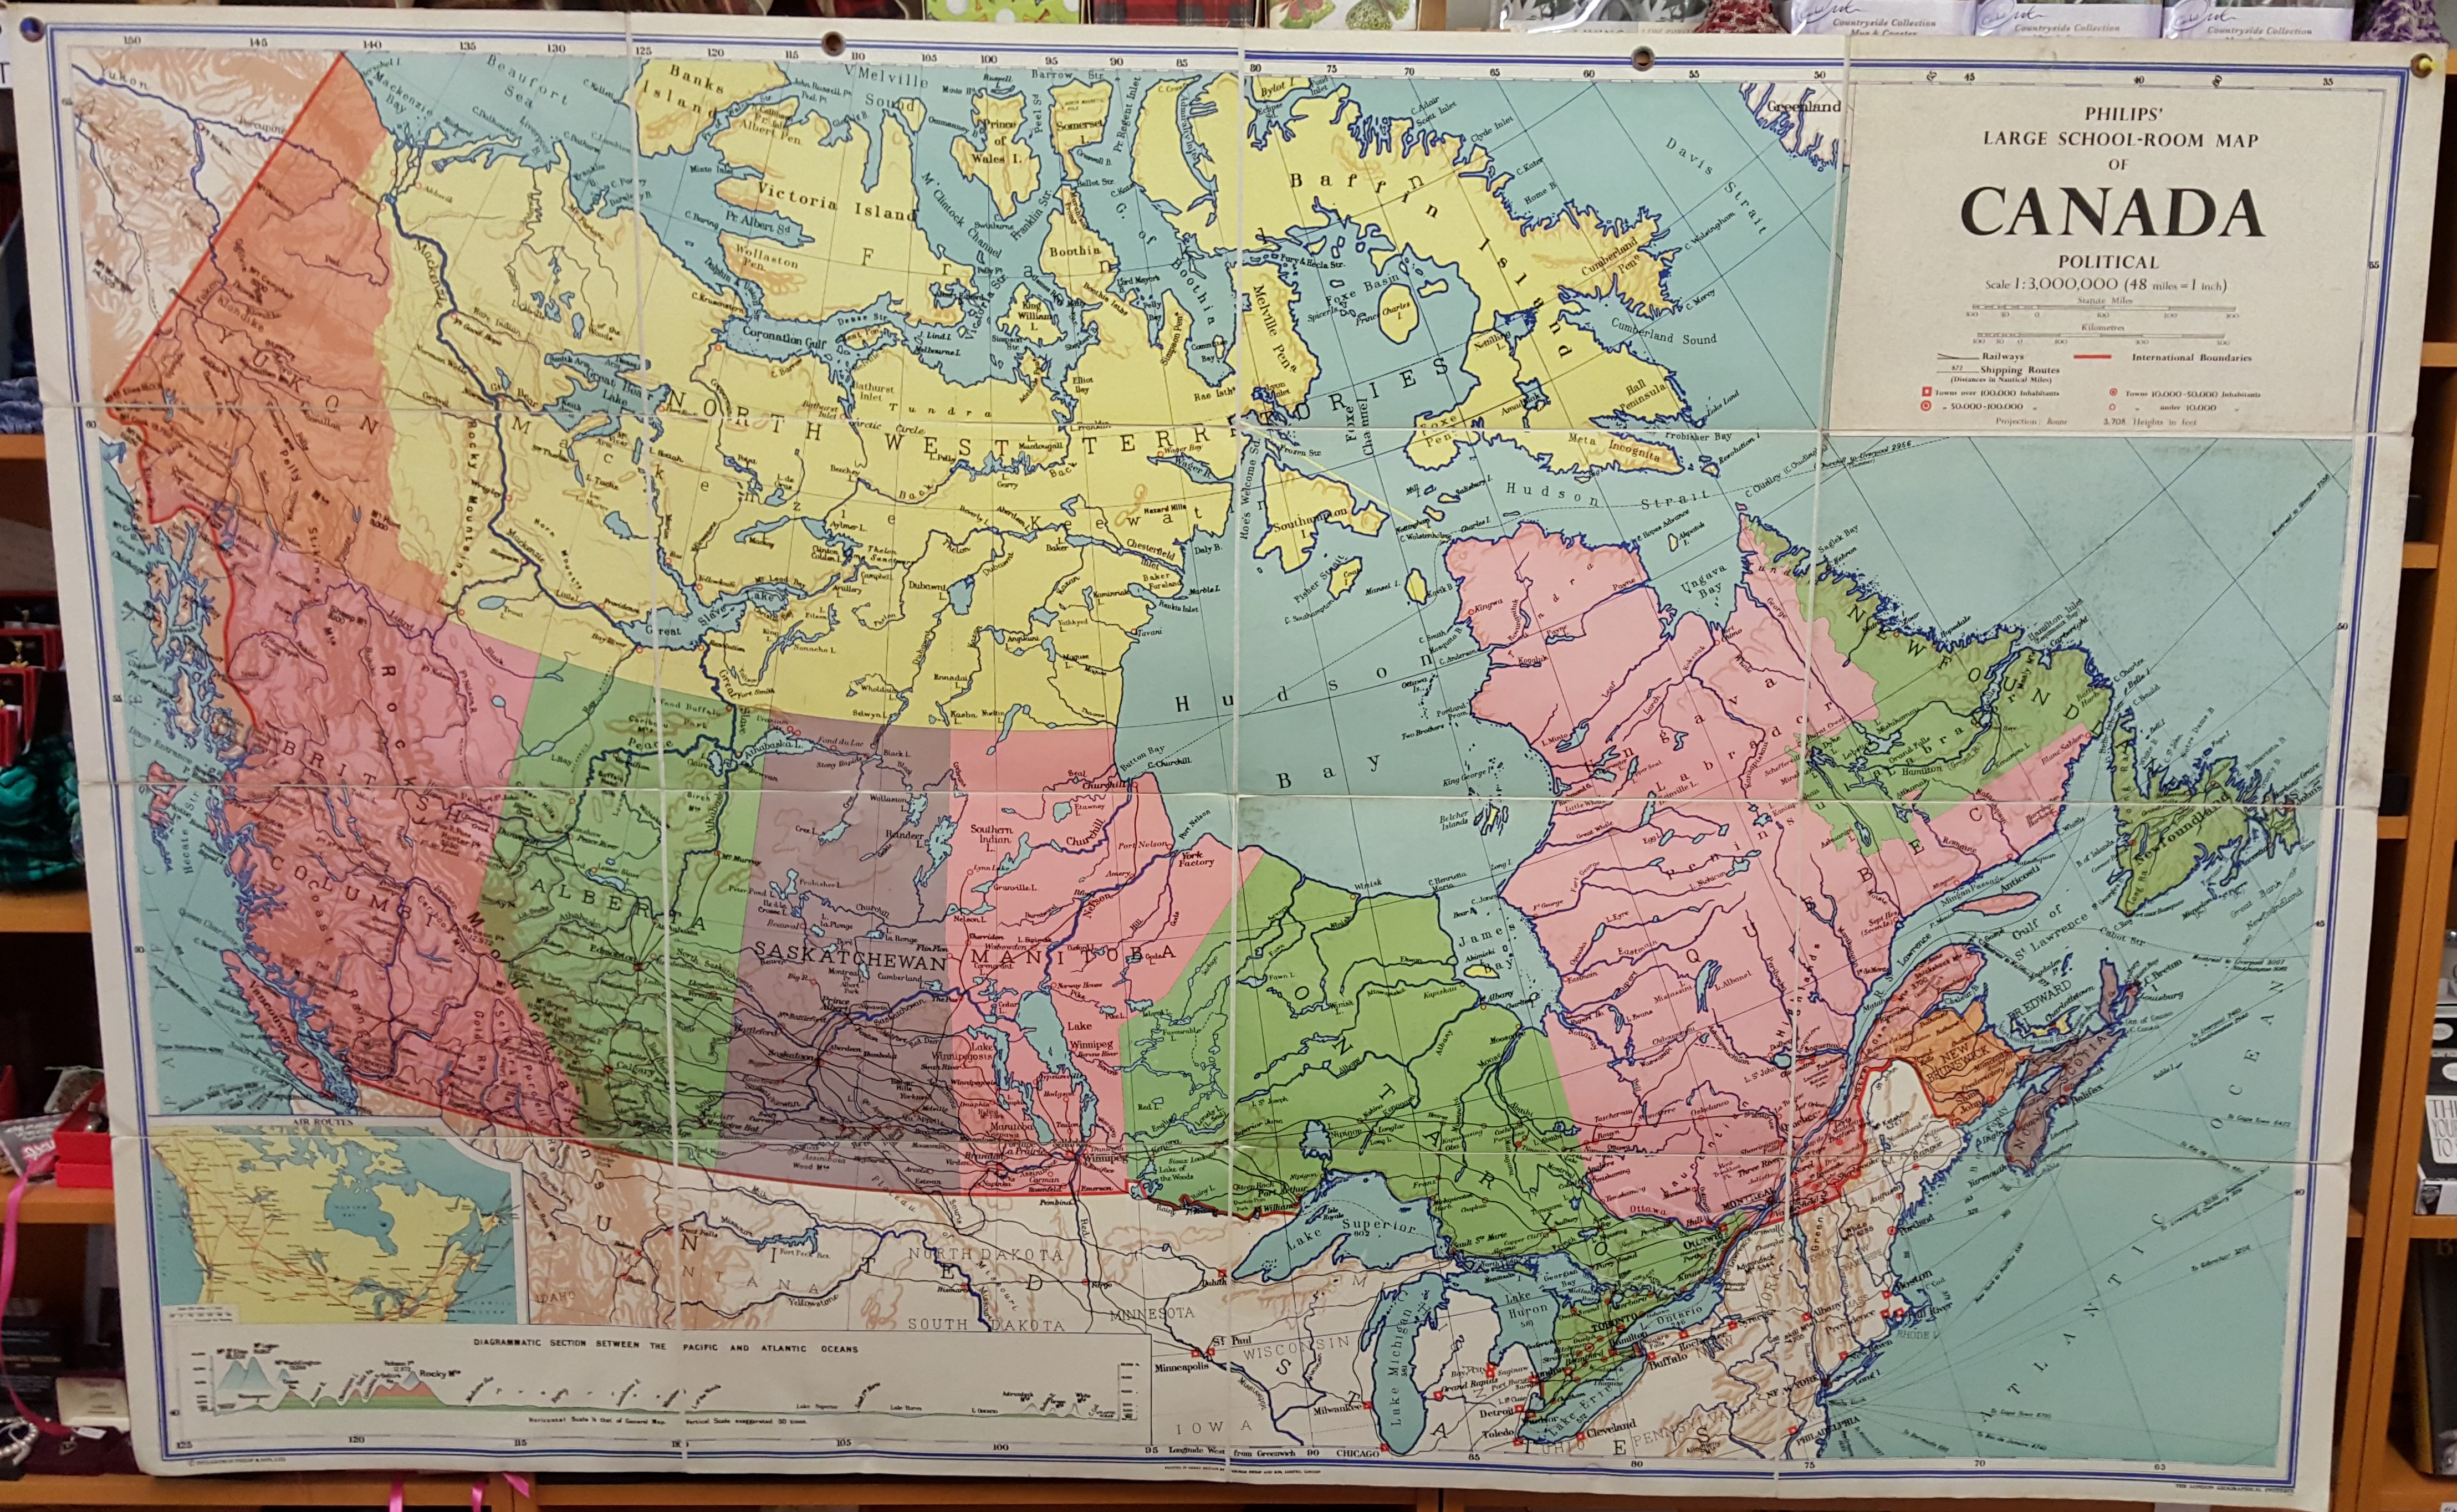 Image for Philips' Large School-Room Map of Canada - Political